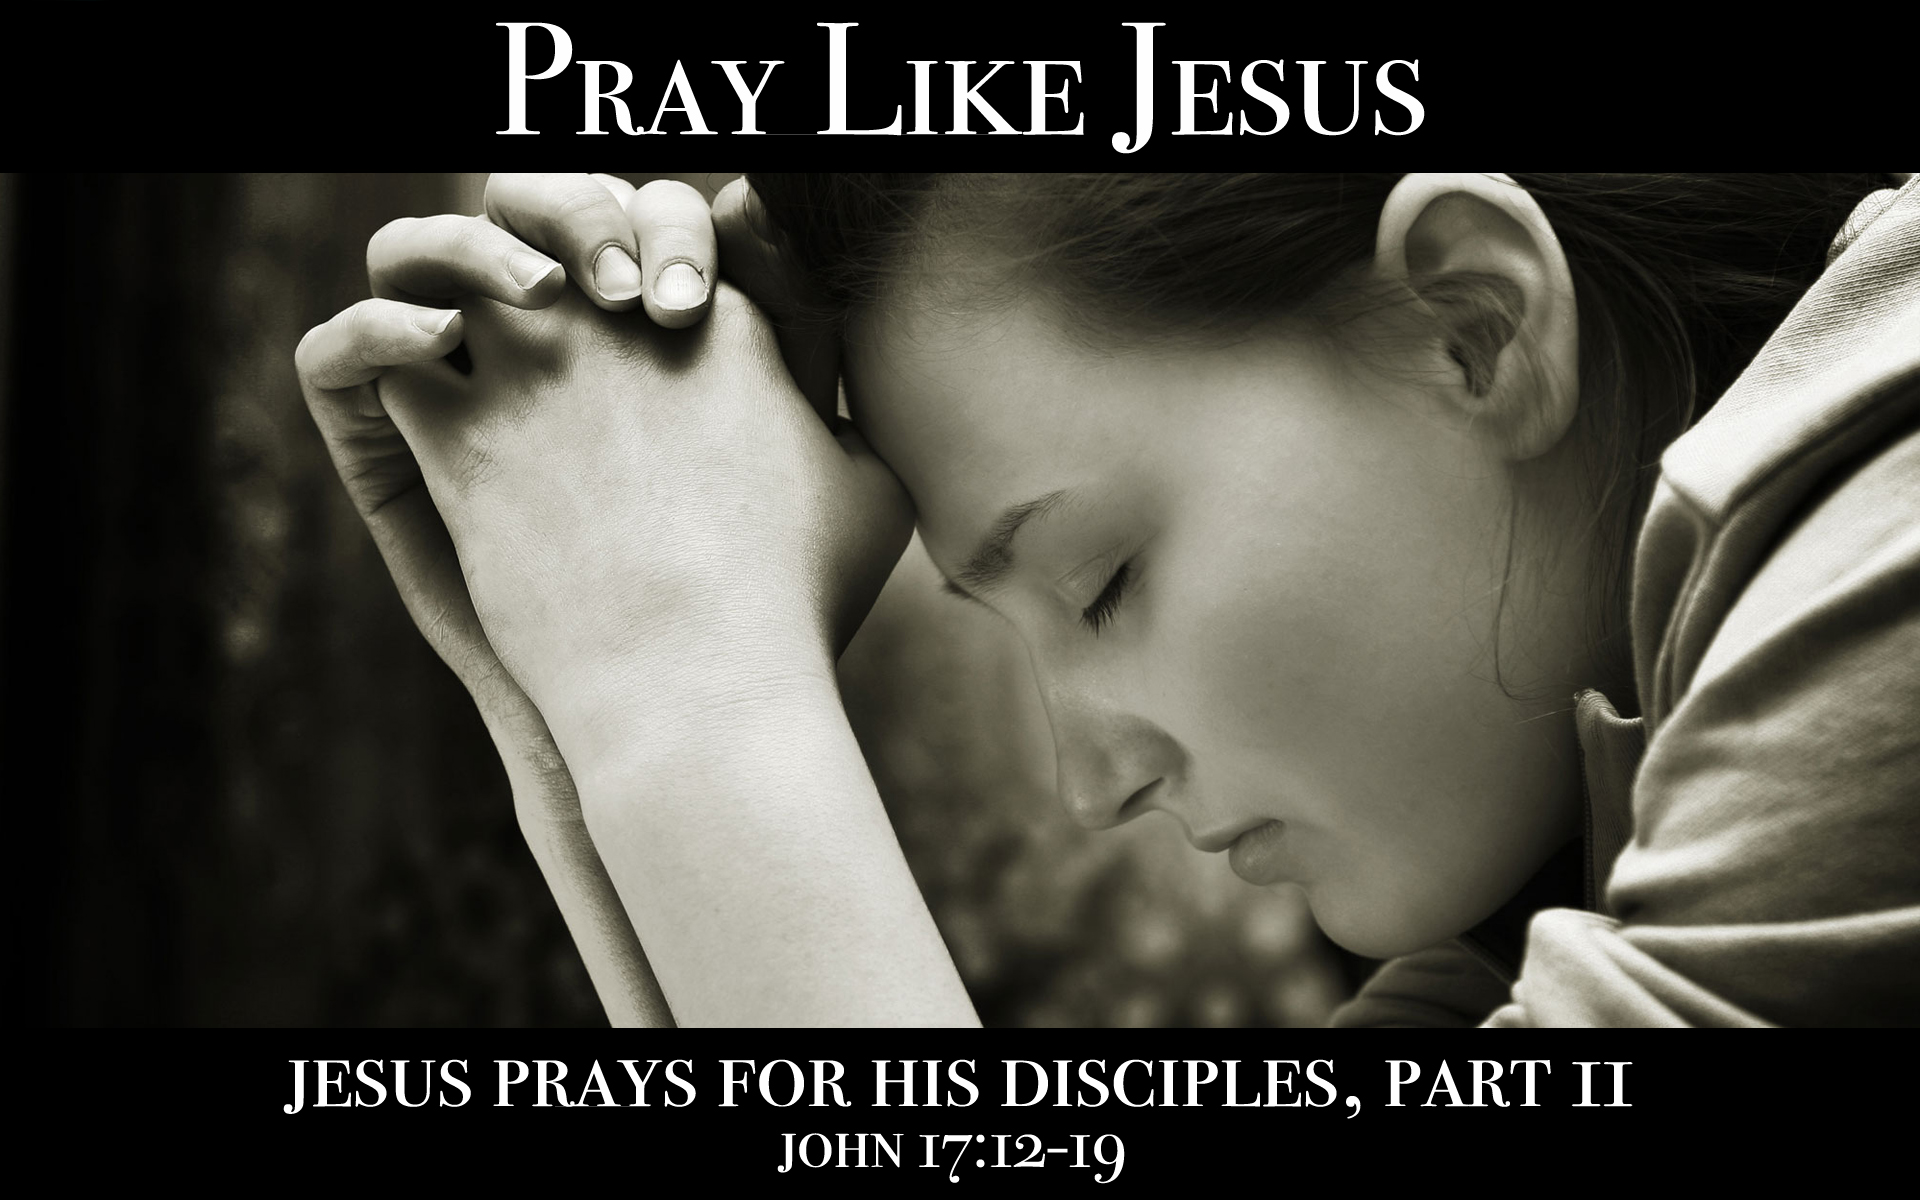 Jesus Prays for His Disciples (Part 2)